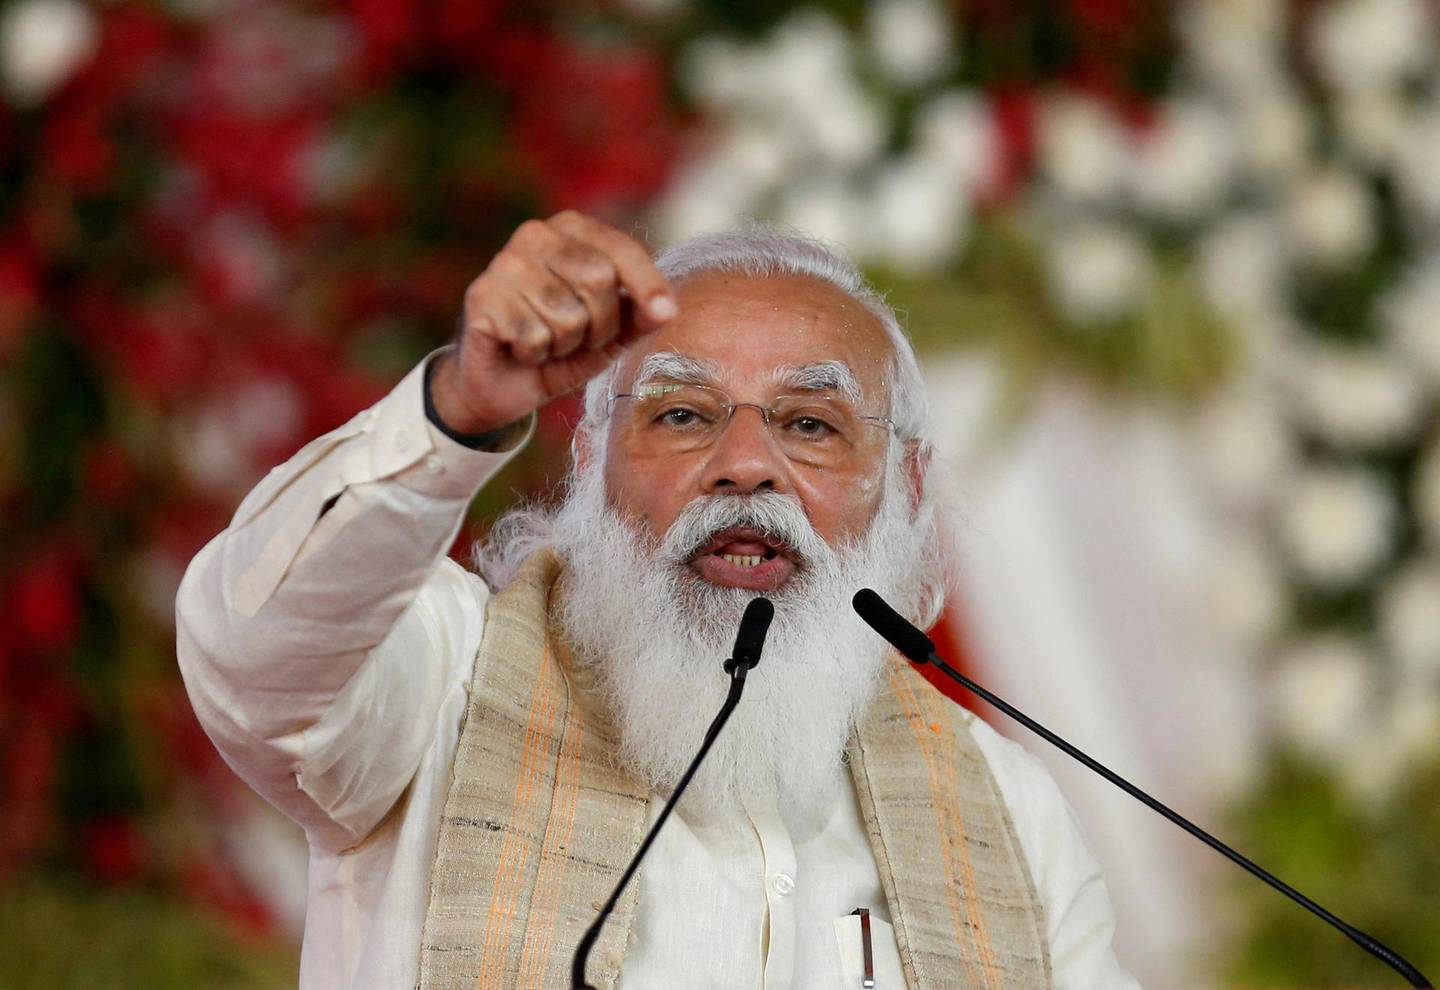 """FILE PHOTO: India's Prime Minister Narendra Modi addresses a gathering before flagging off the """"Dandi March"""", or Salt March, to celebrate the 75th anniversary of India's Independence, in Ahmedabad, India, March 12, 2021. REUTERS/Amit Dave/File Photo"""